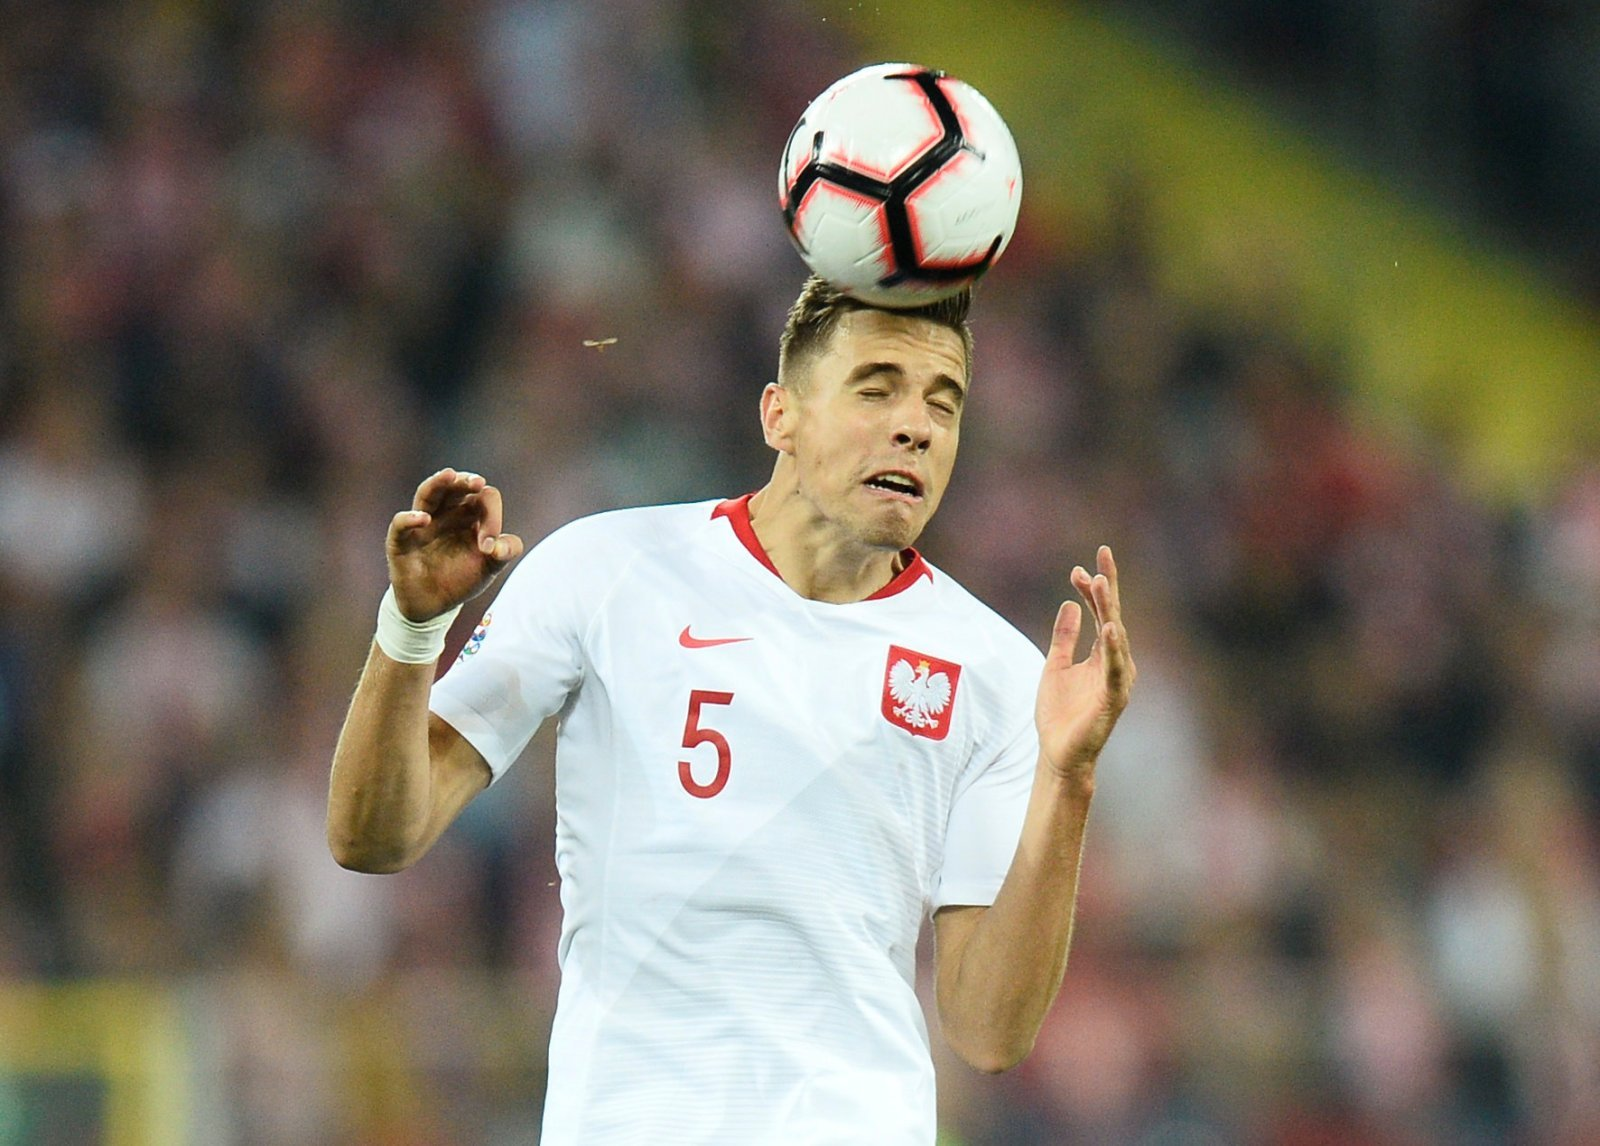 Rangers would be smart to try and acquire Jan Bednarek